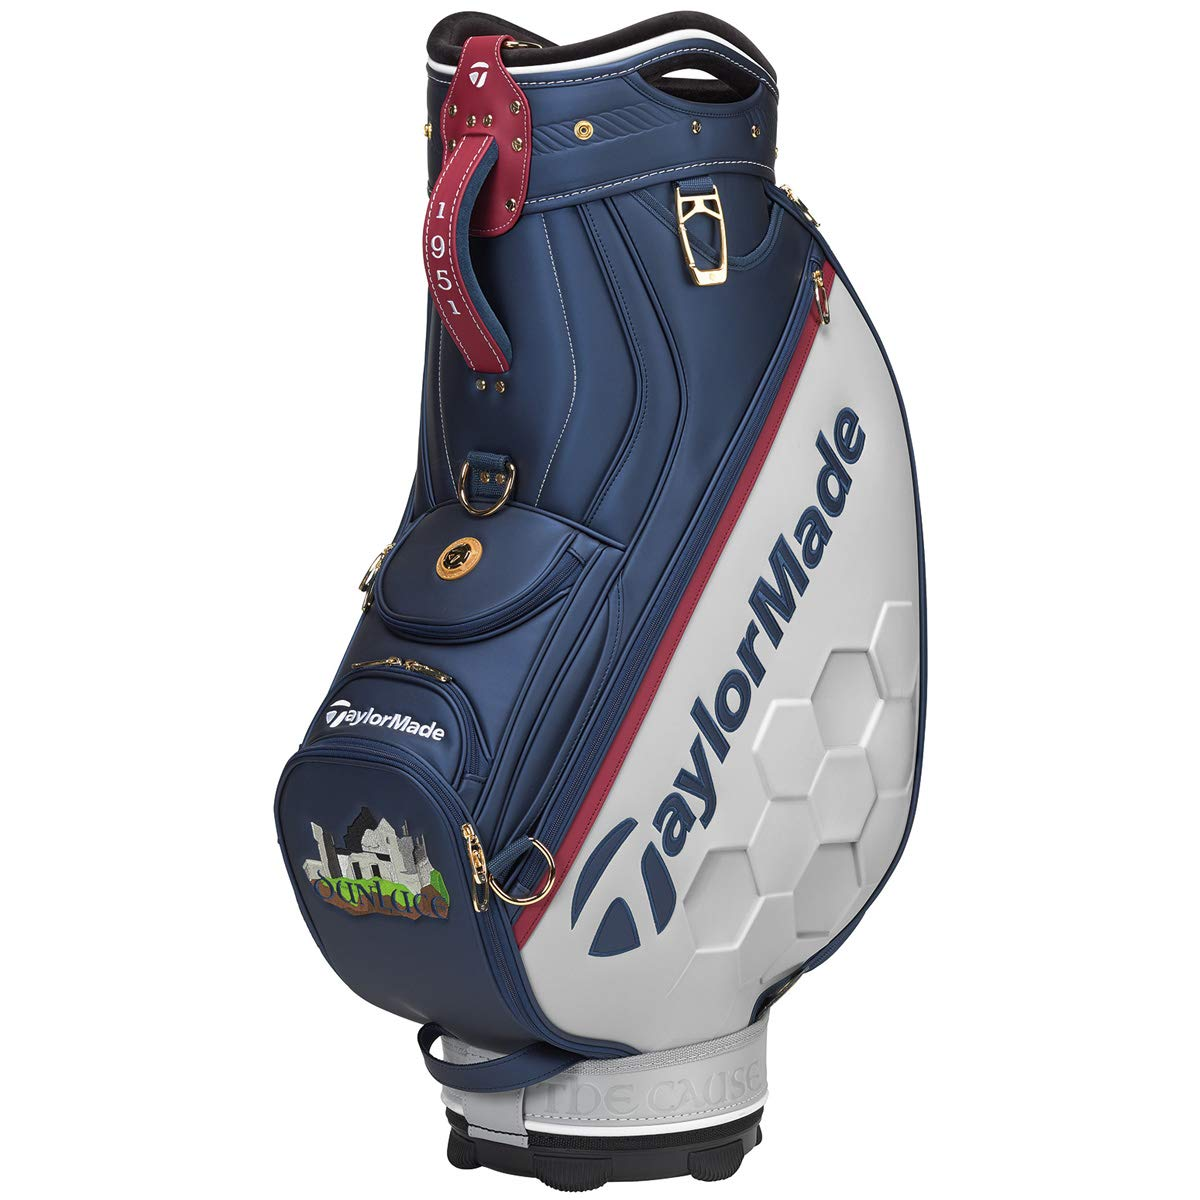 テーラーメイド(Taylormade) 2019 TM19 British Open Staff Bag N65528 Blue/Gray/White B07TFFYHBX